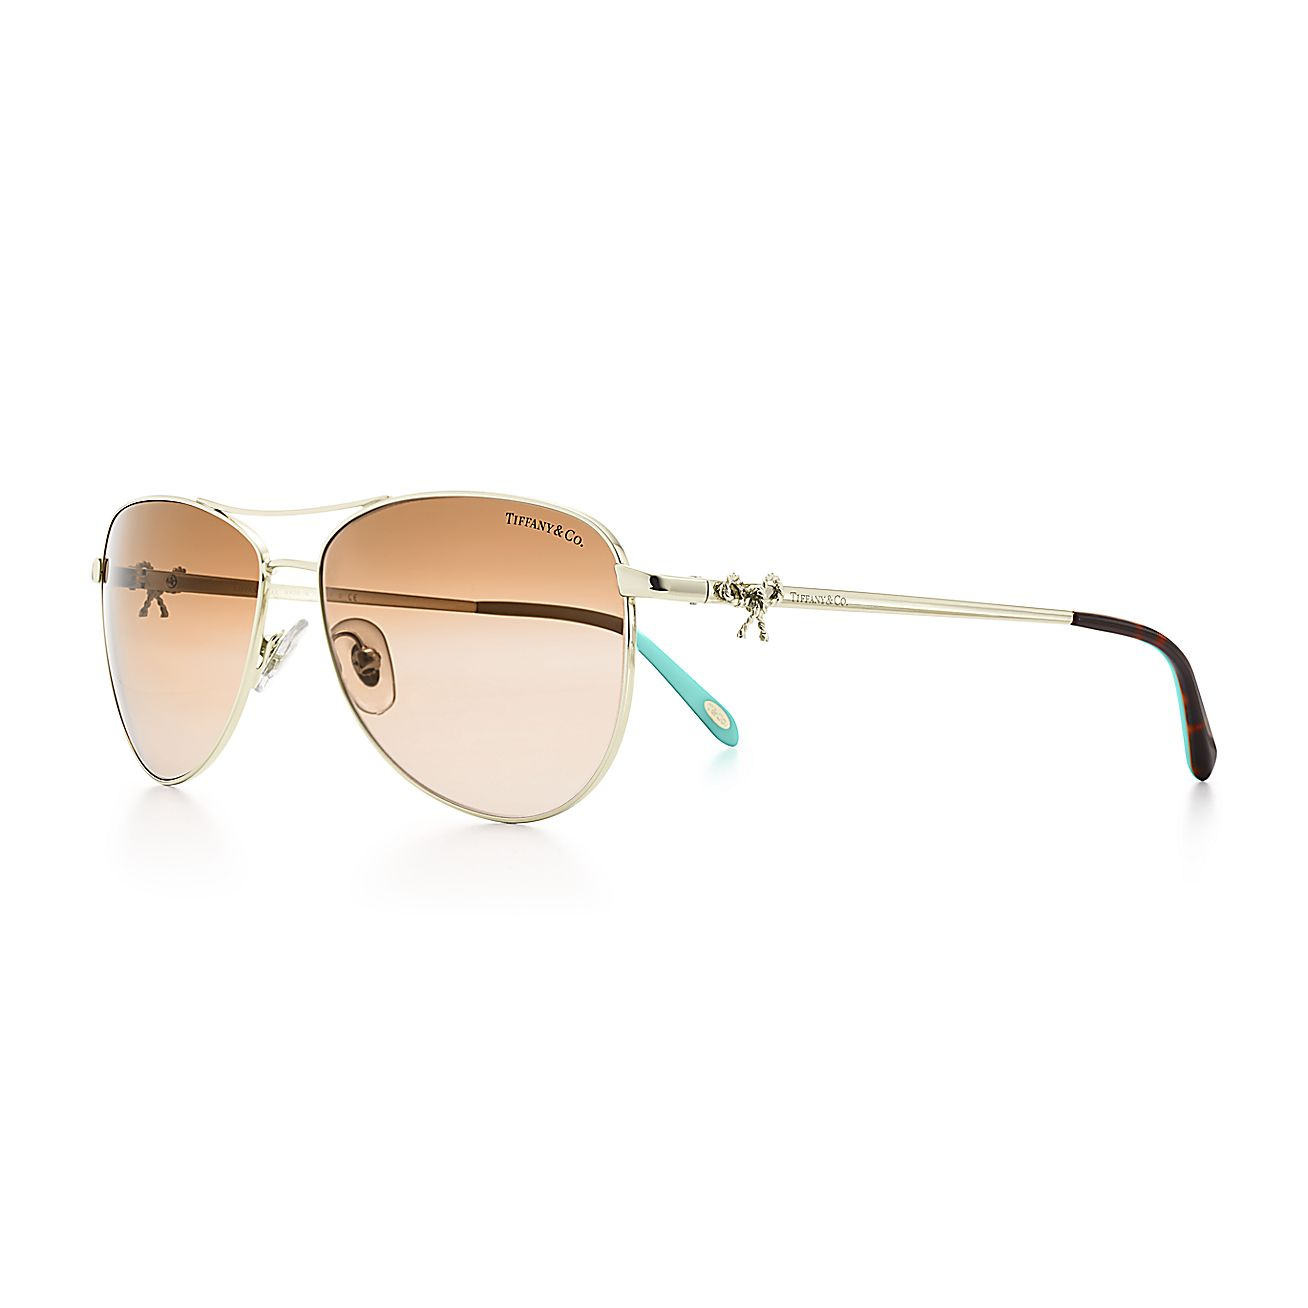 5d987bbc52c5 Tiffany And Co Locks Aviator Sunglasses | United Nations System ...